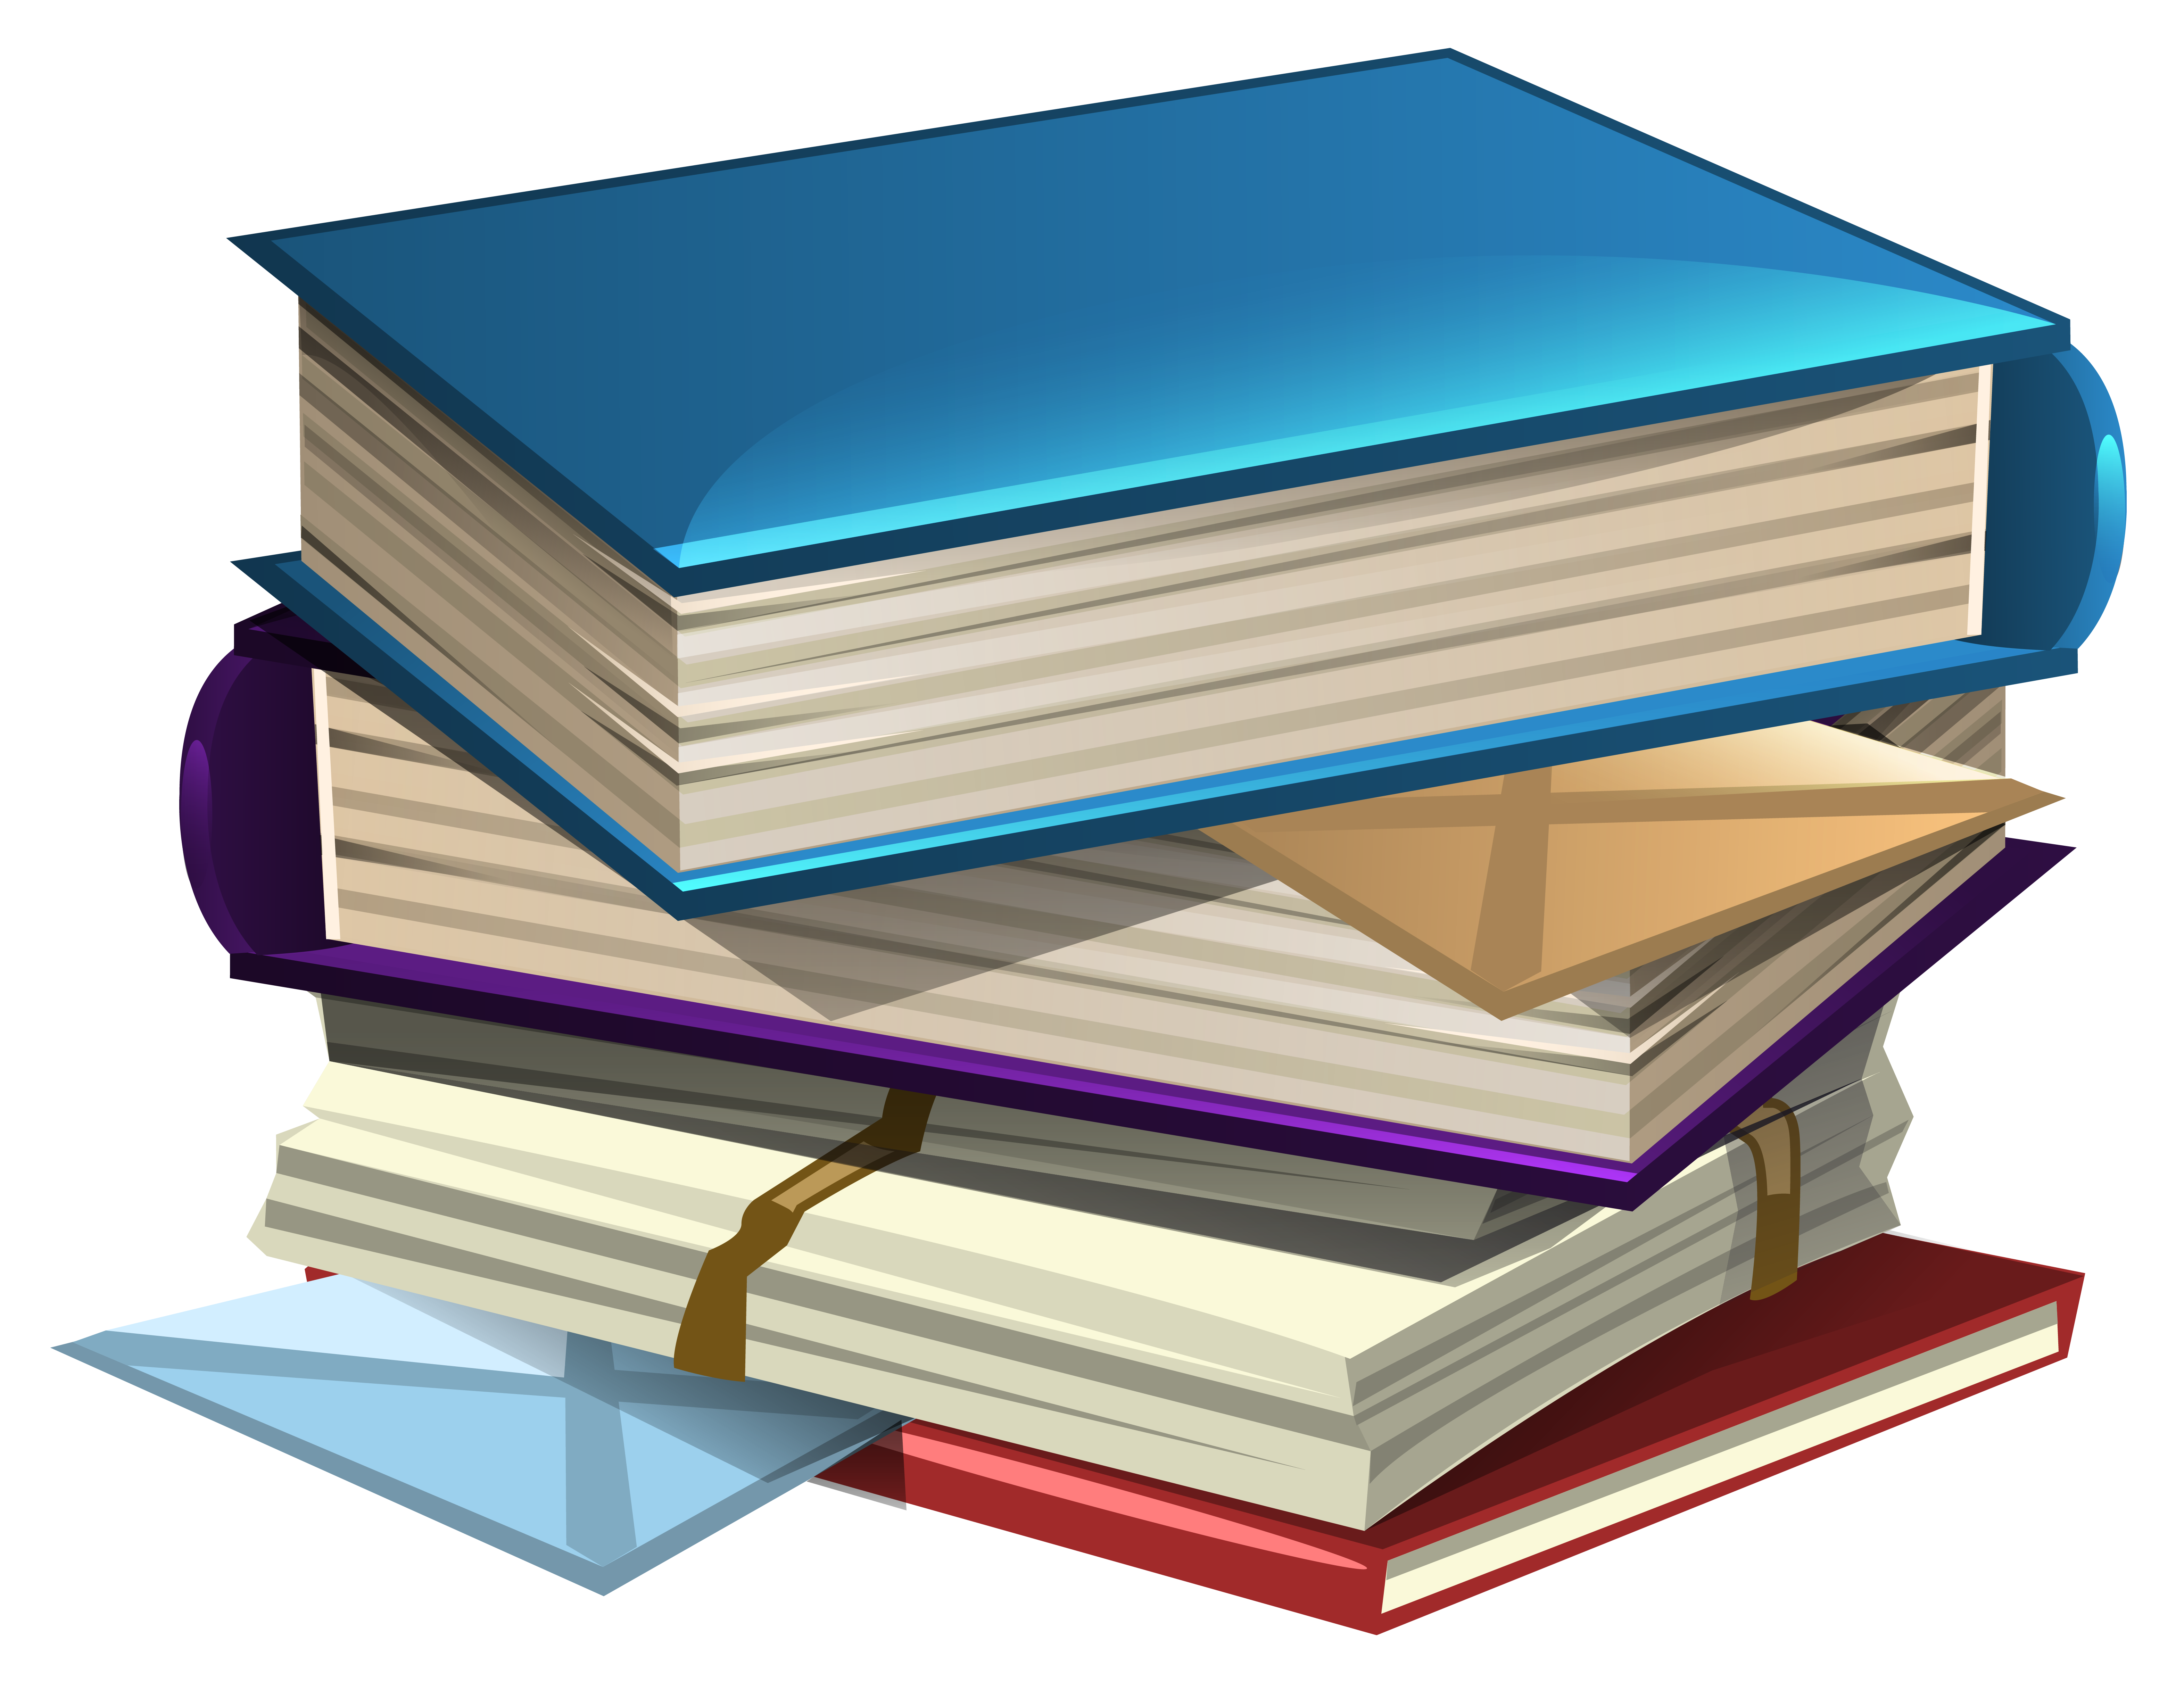 Books clipart png. School image gallery yopriceville